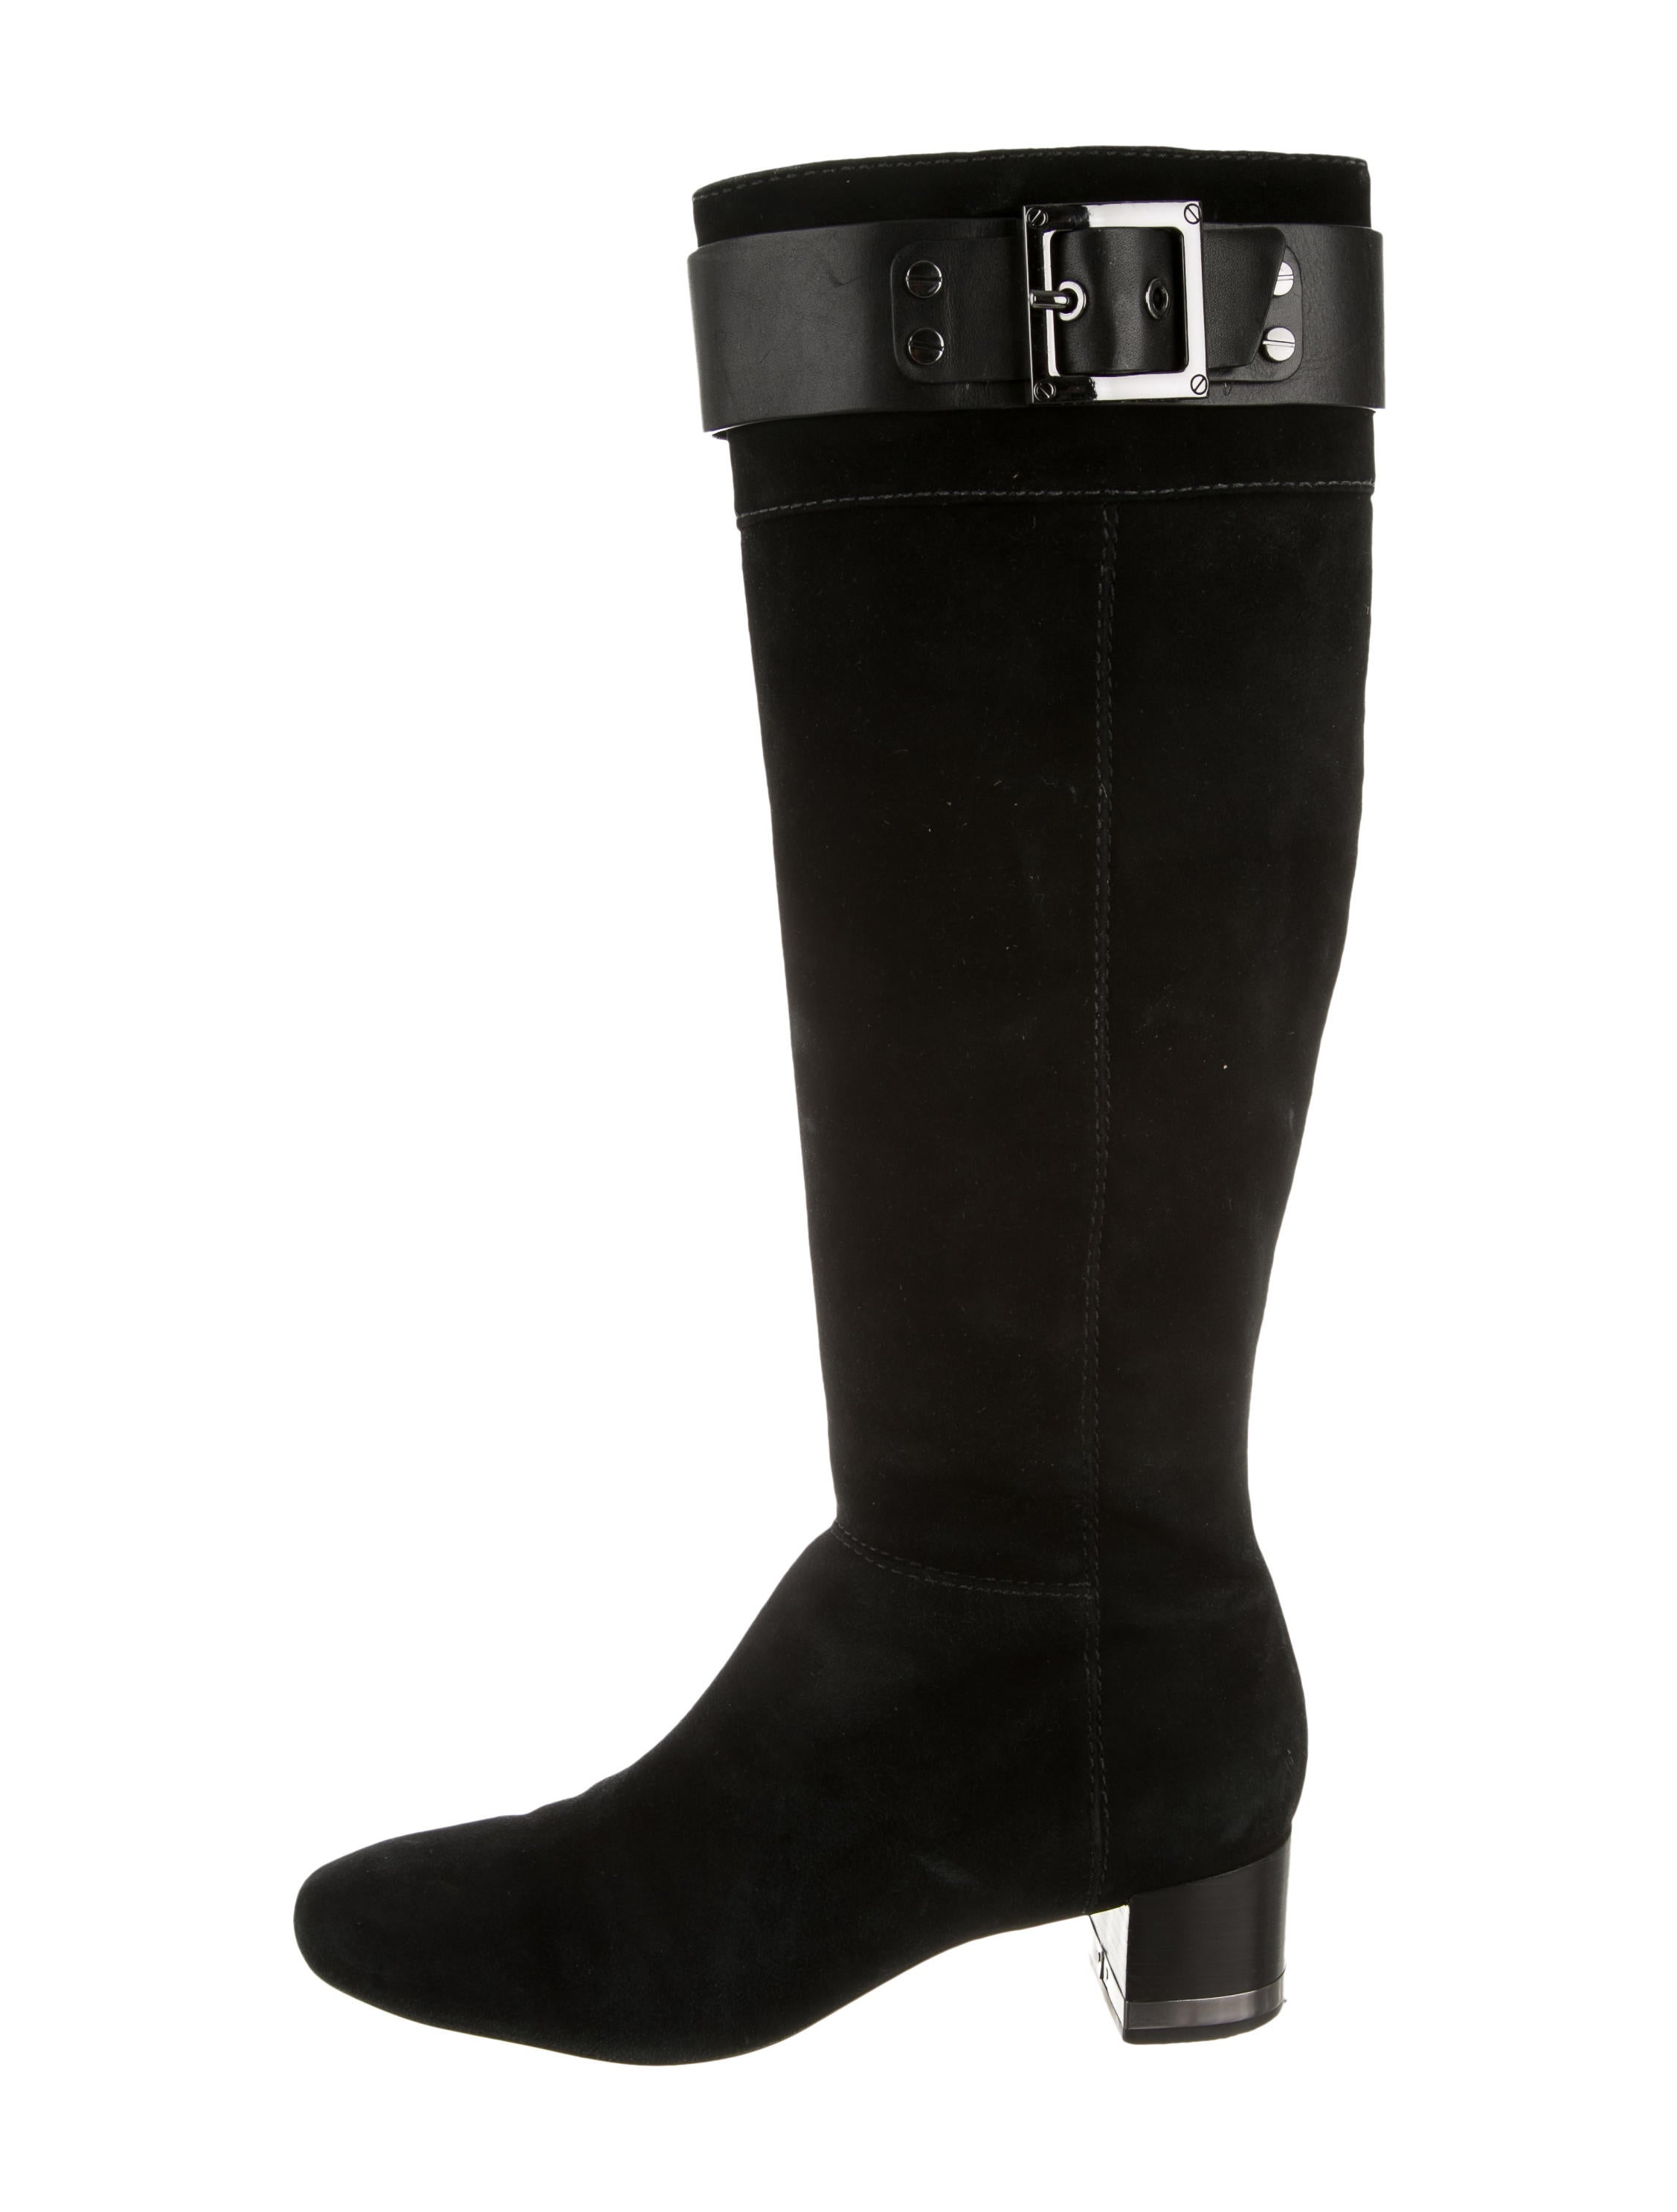 burch suede knee high boots shoes wto70636 the